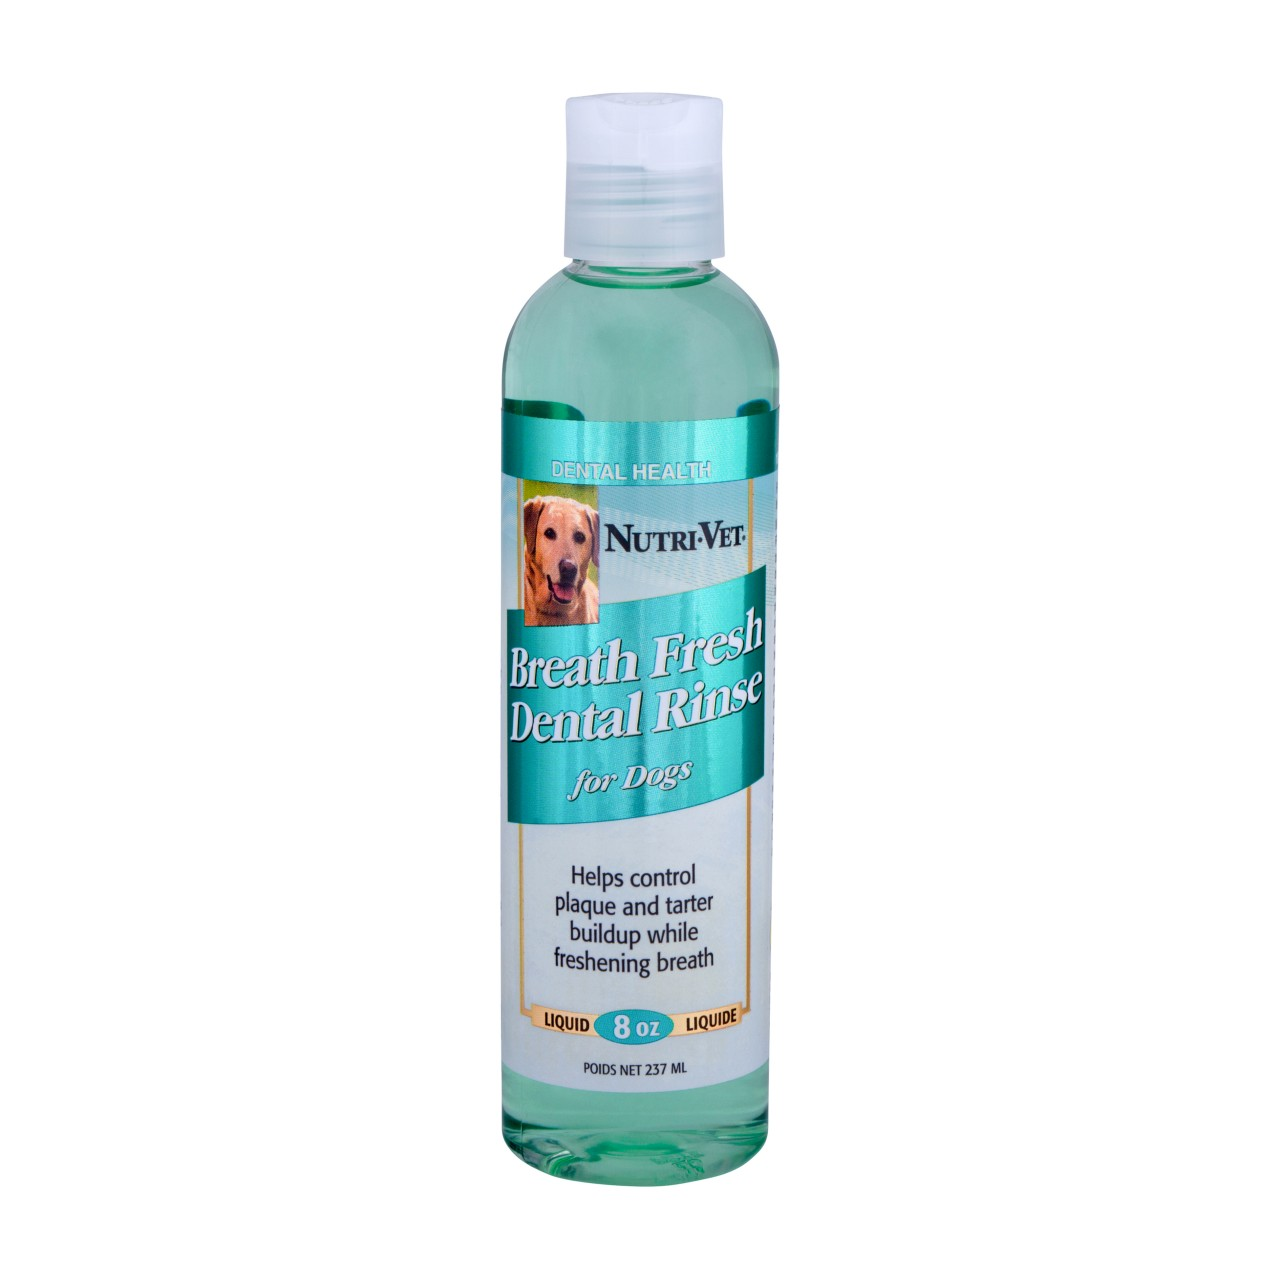 Nutri-Vet Breath Fresh Dental Liquid